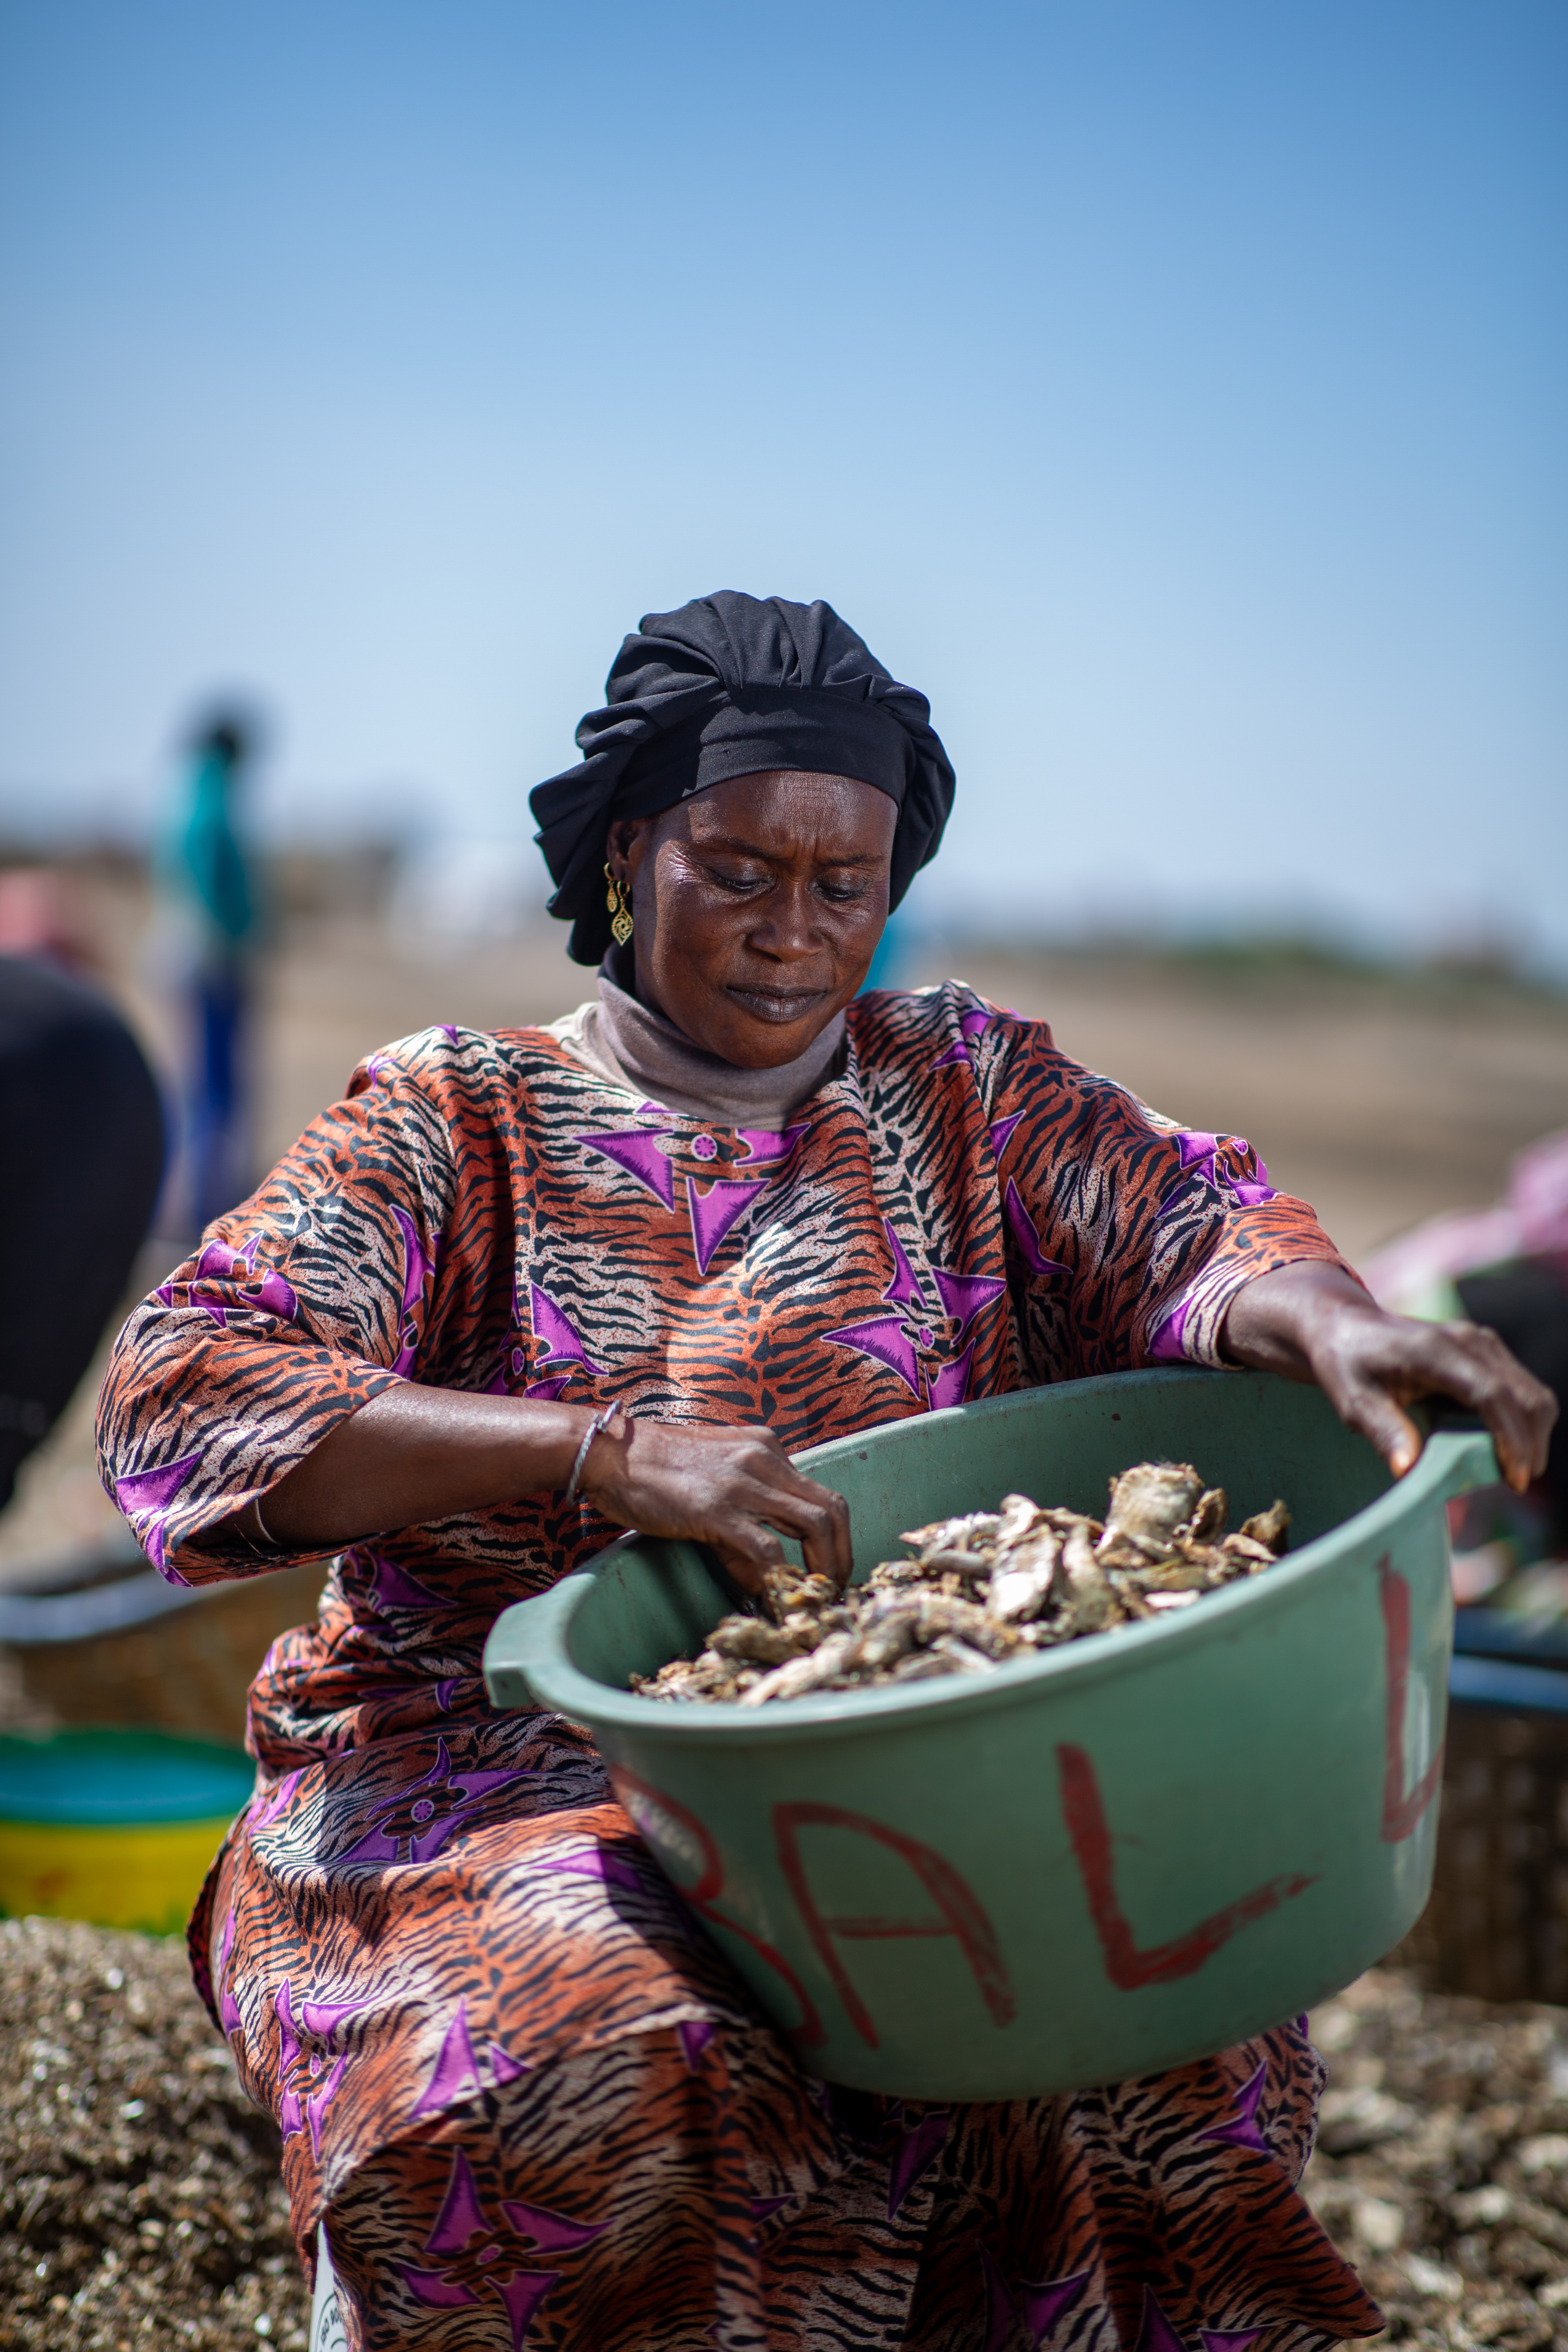 A woman sorts fish from a bucket.